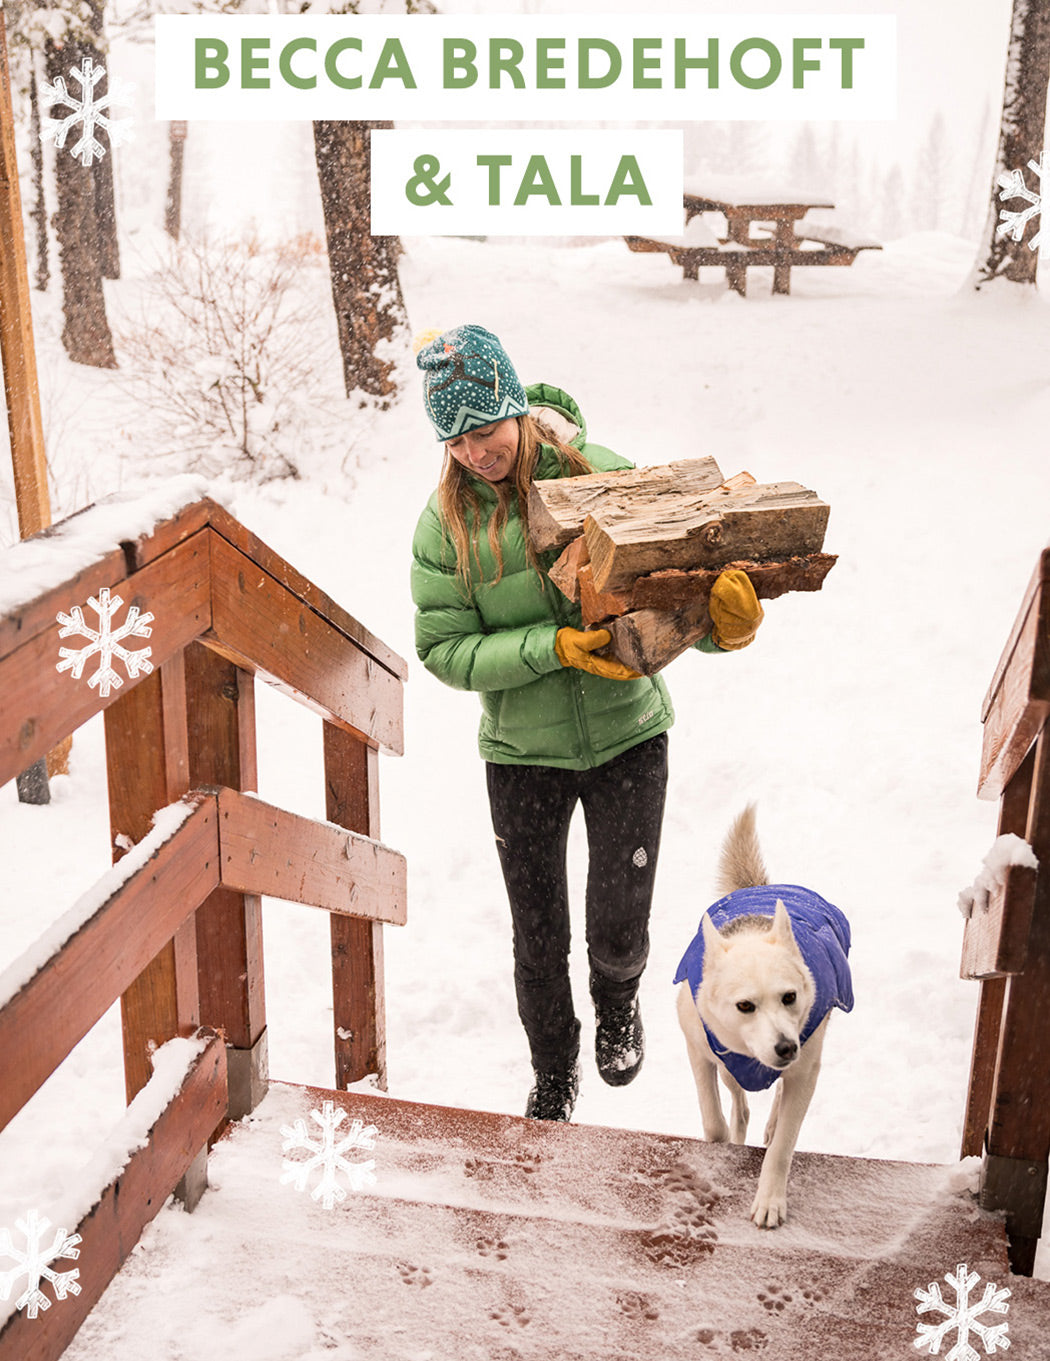 Becca carries firewood up the stairs with Tala at her side.